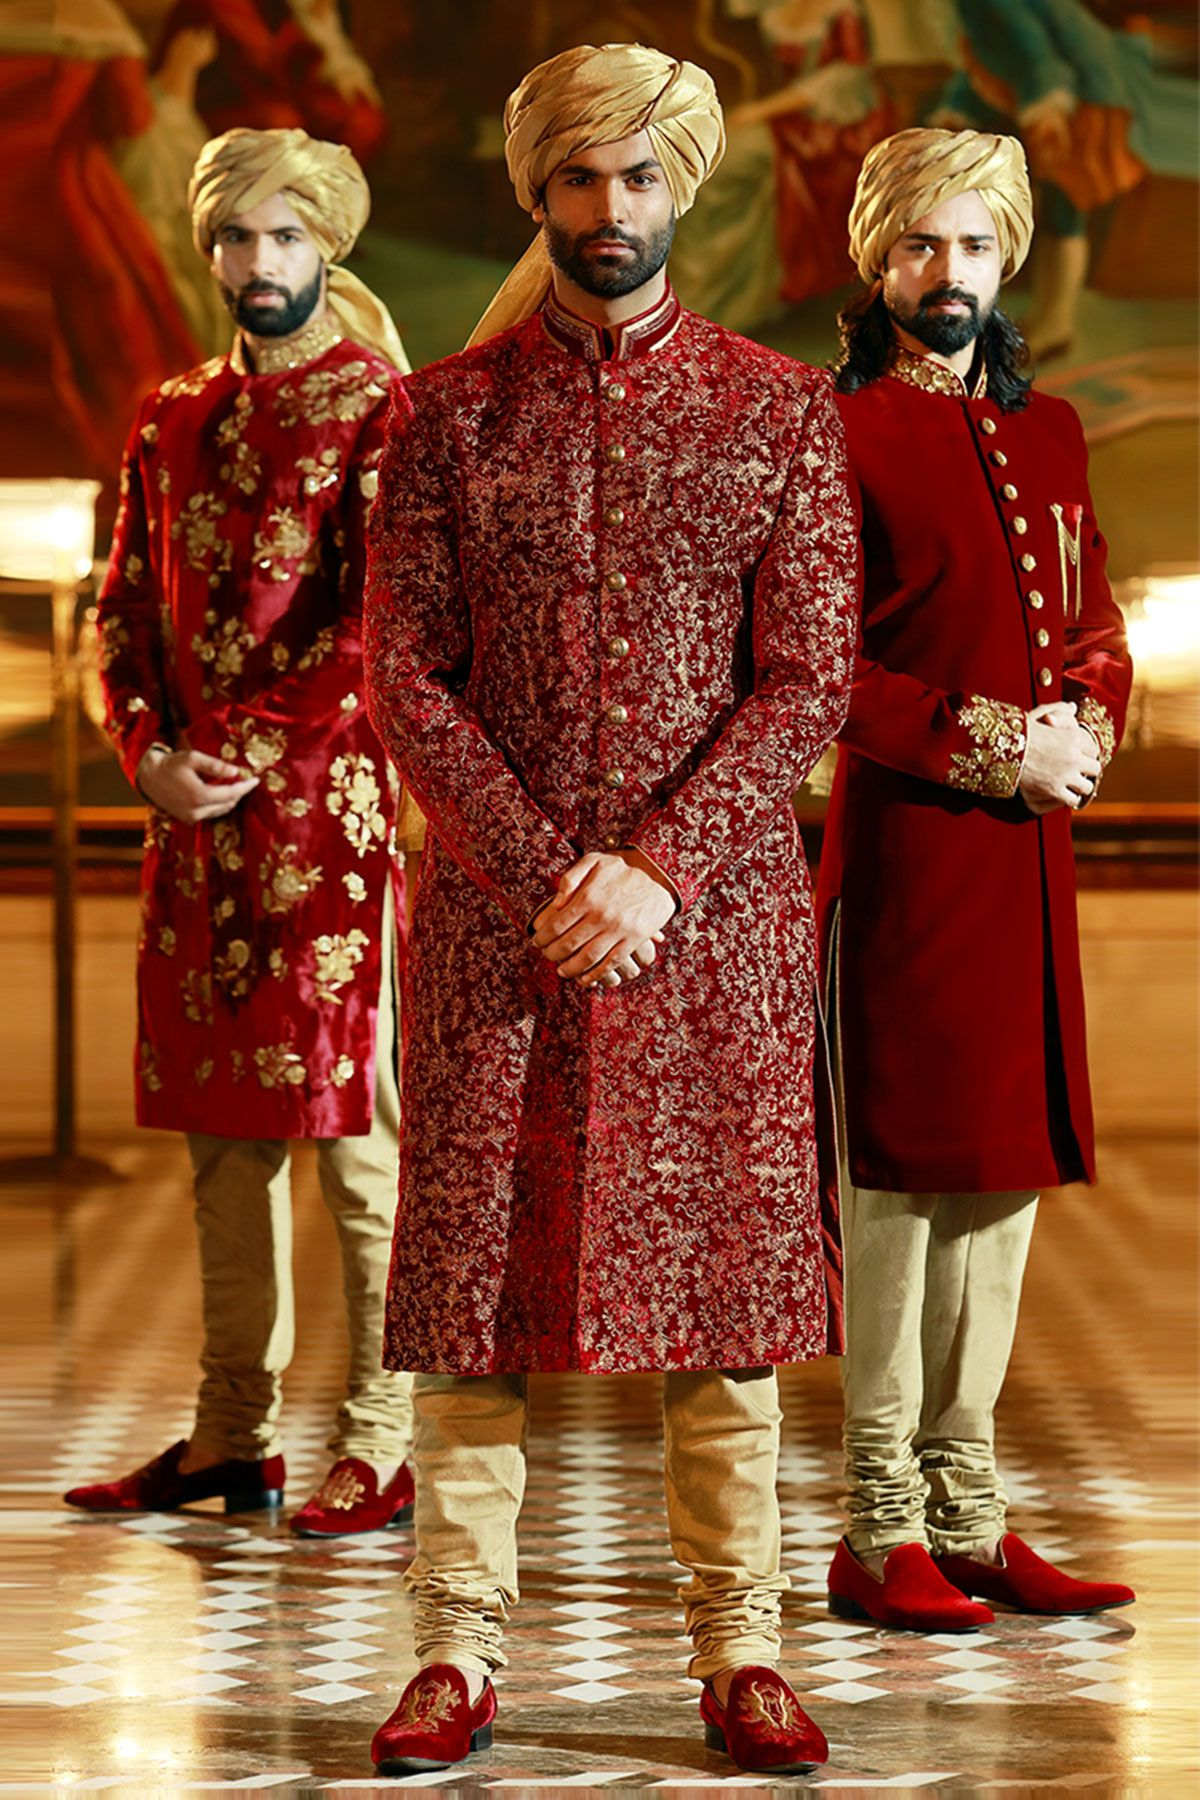 Pakistani Sherwani Designs in Maroon color